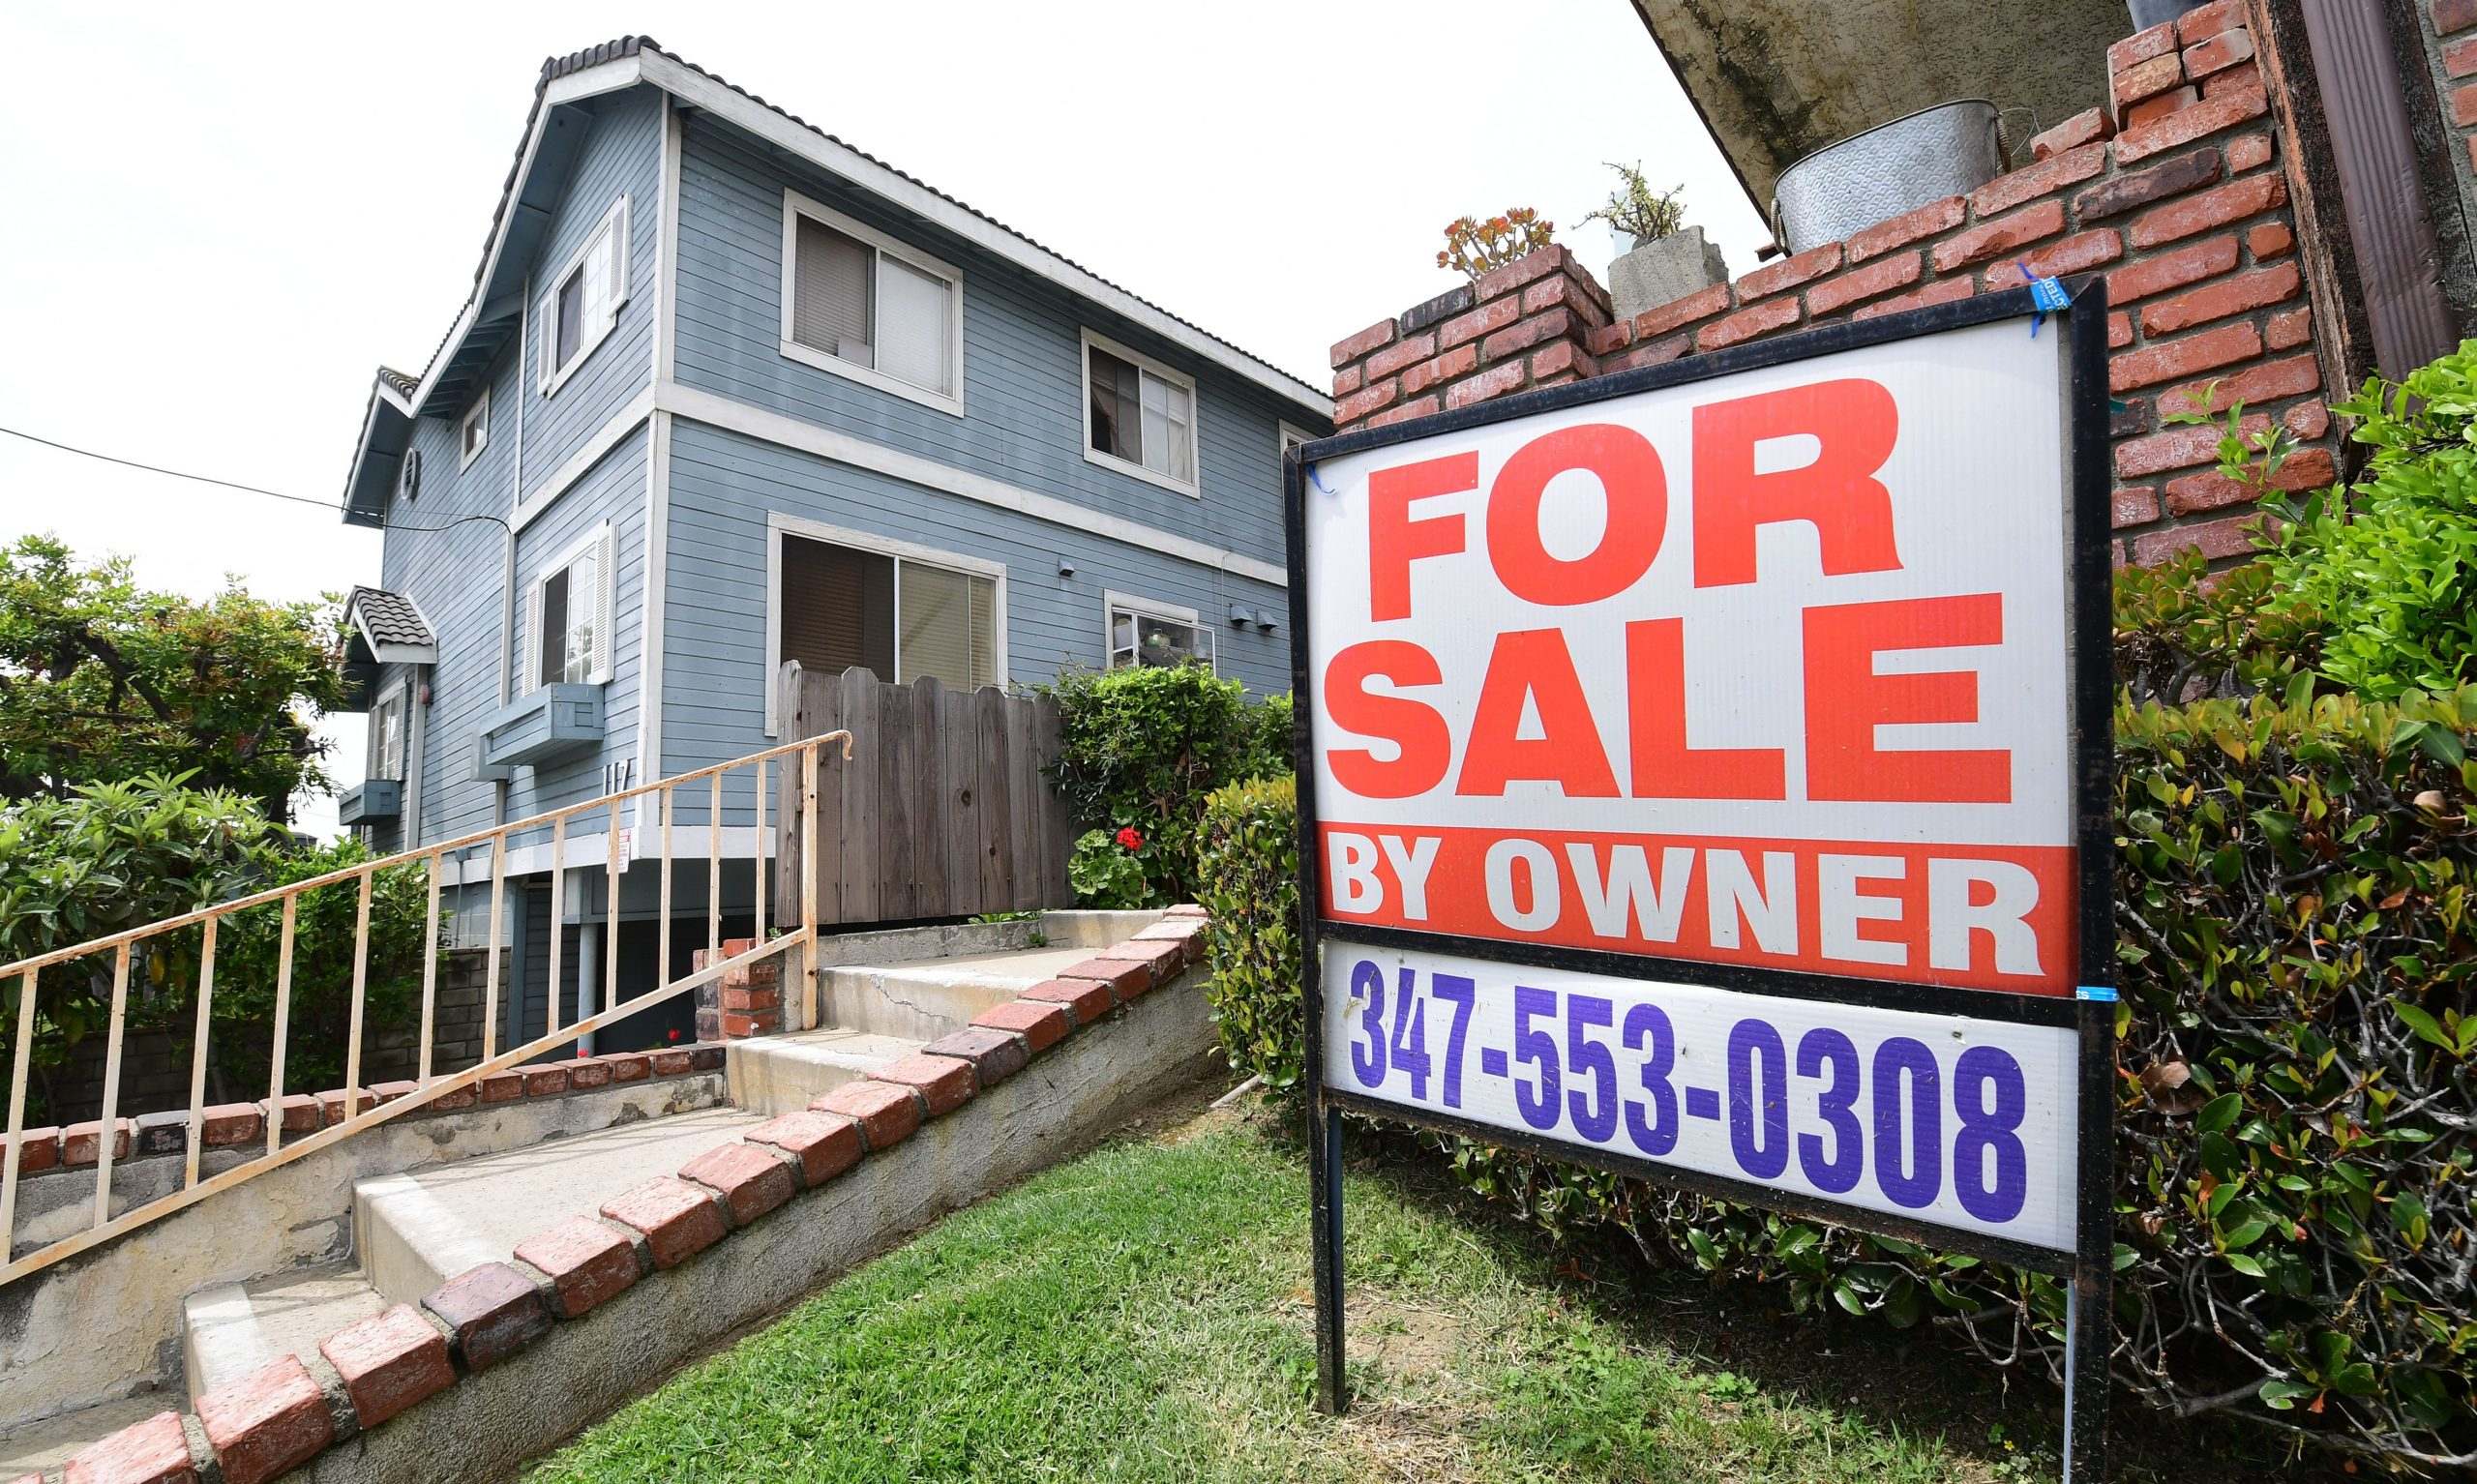 Mortgage demand from home buyers is now 28% higher than last year